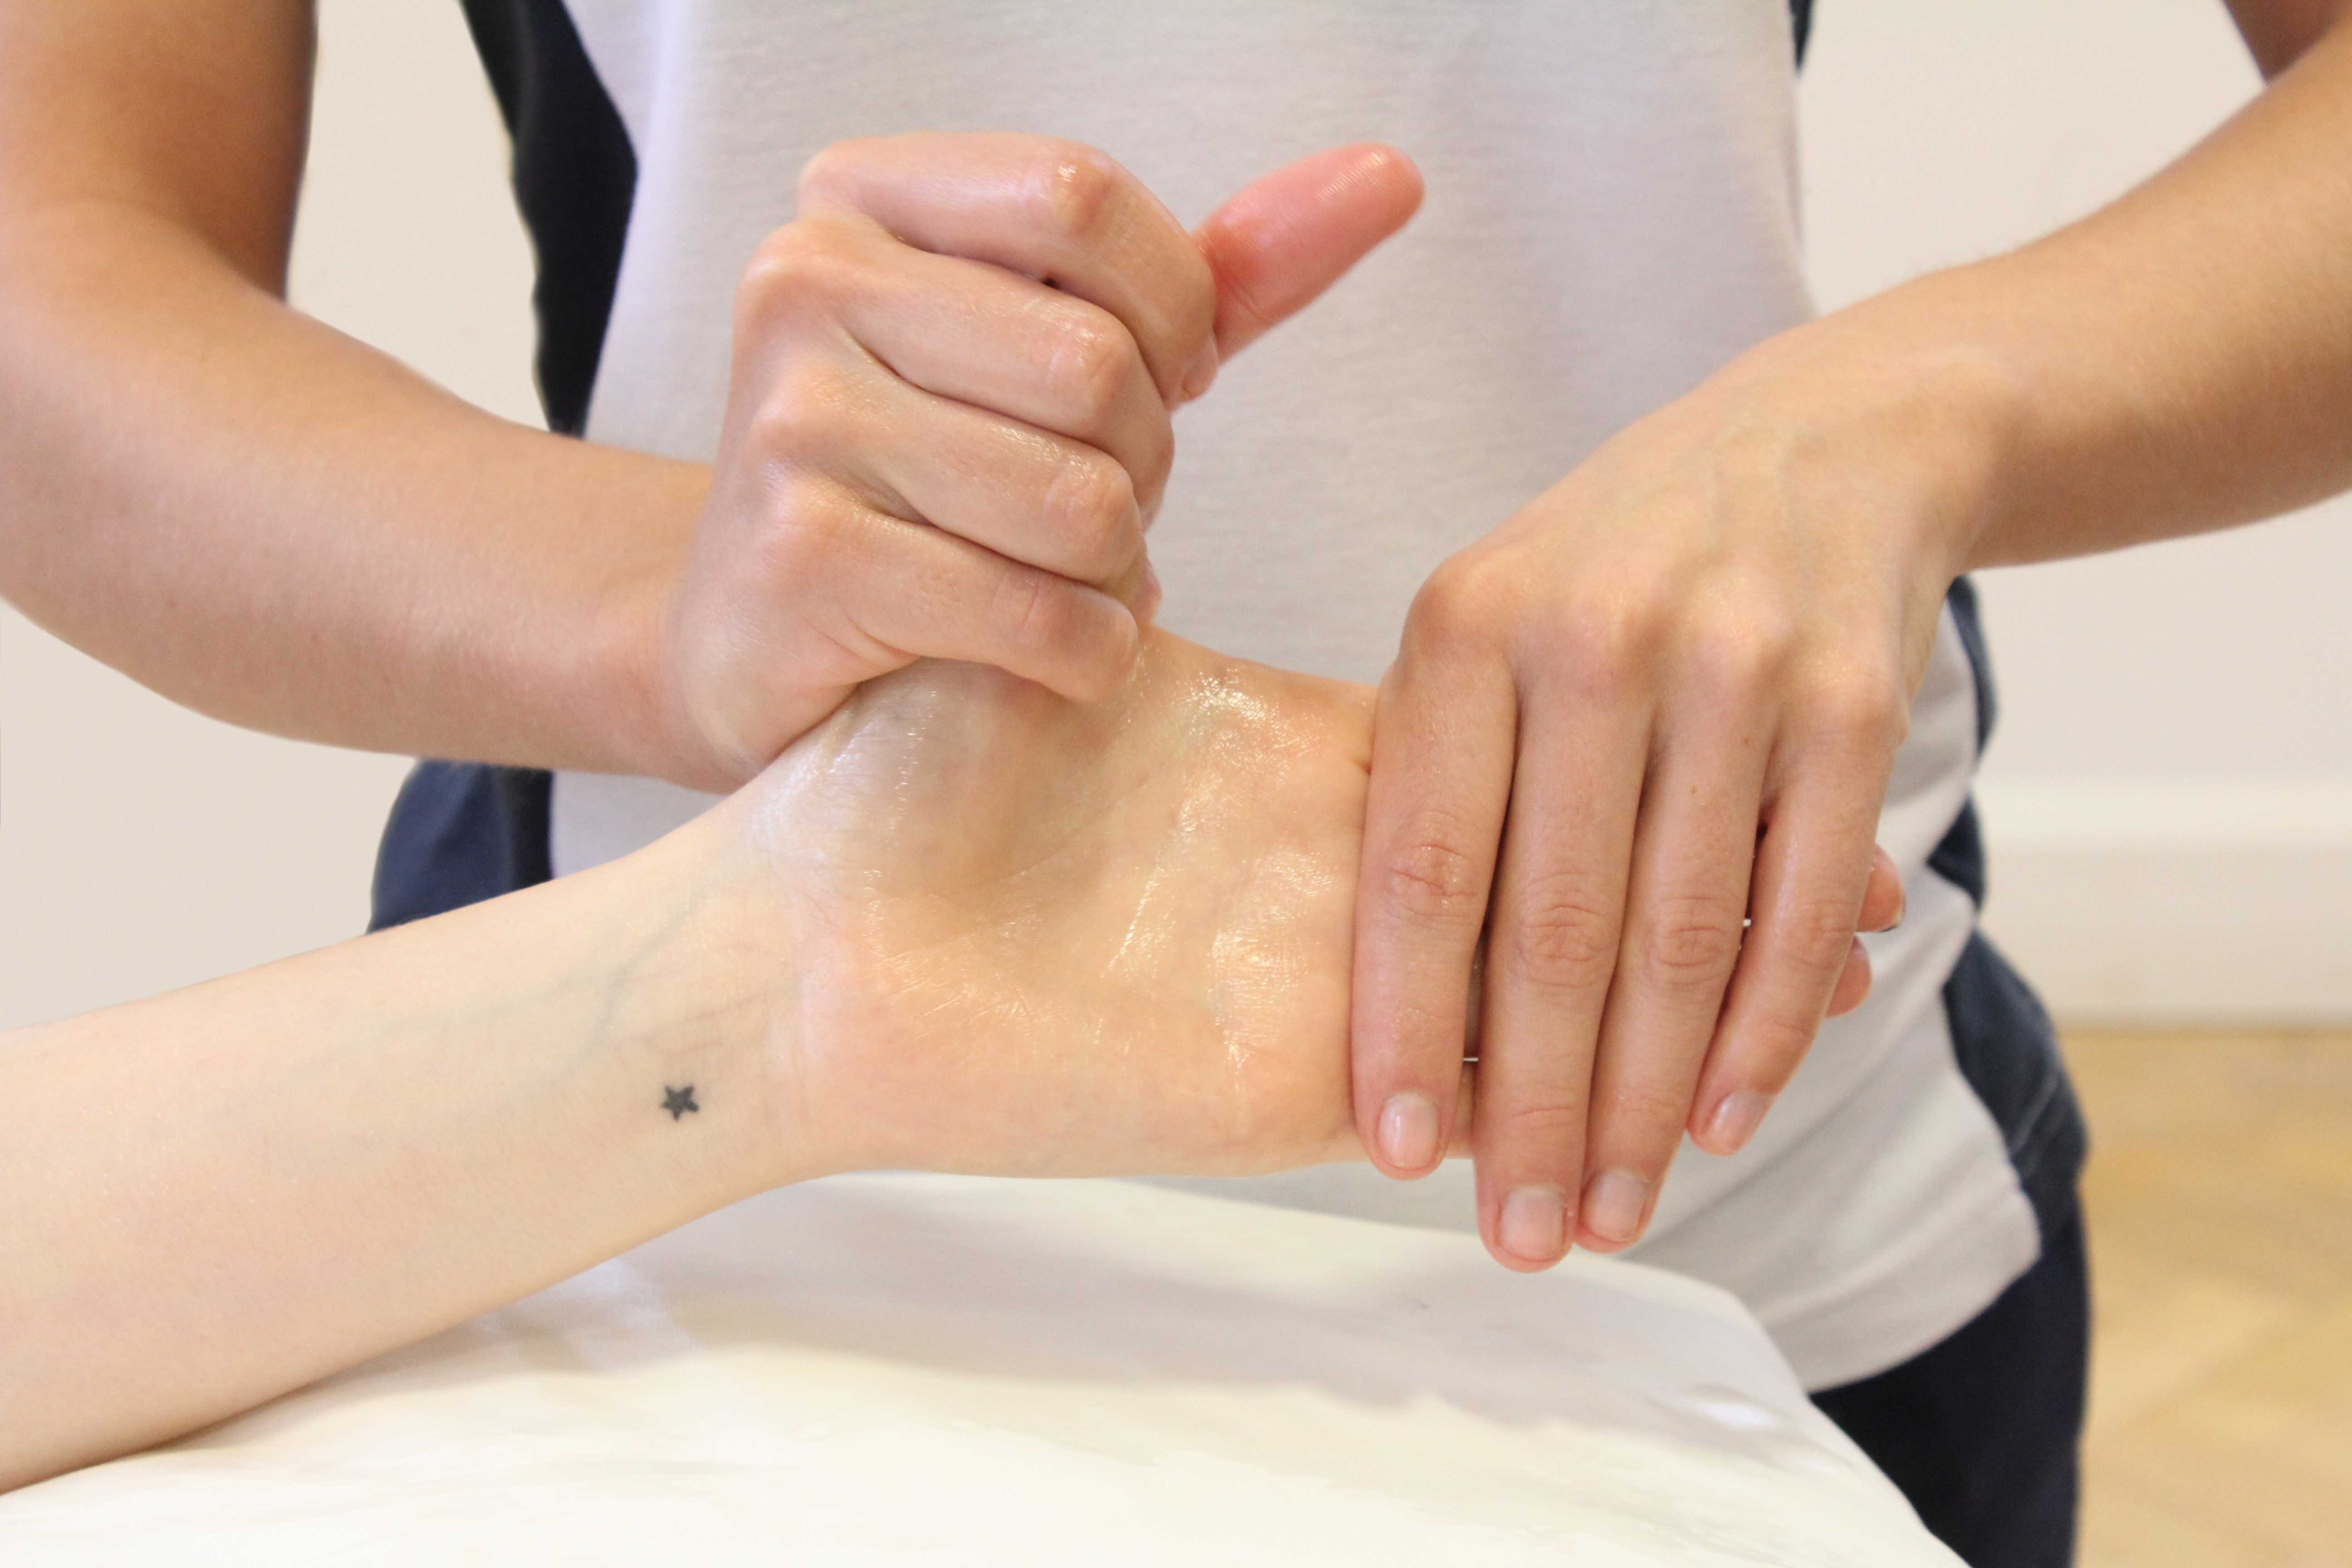 Soft tissue massage of the hand